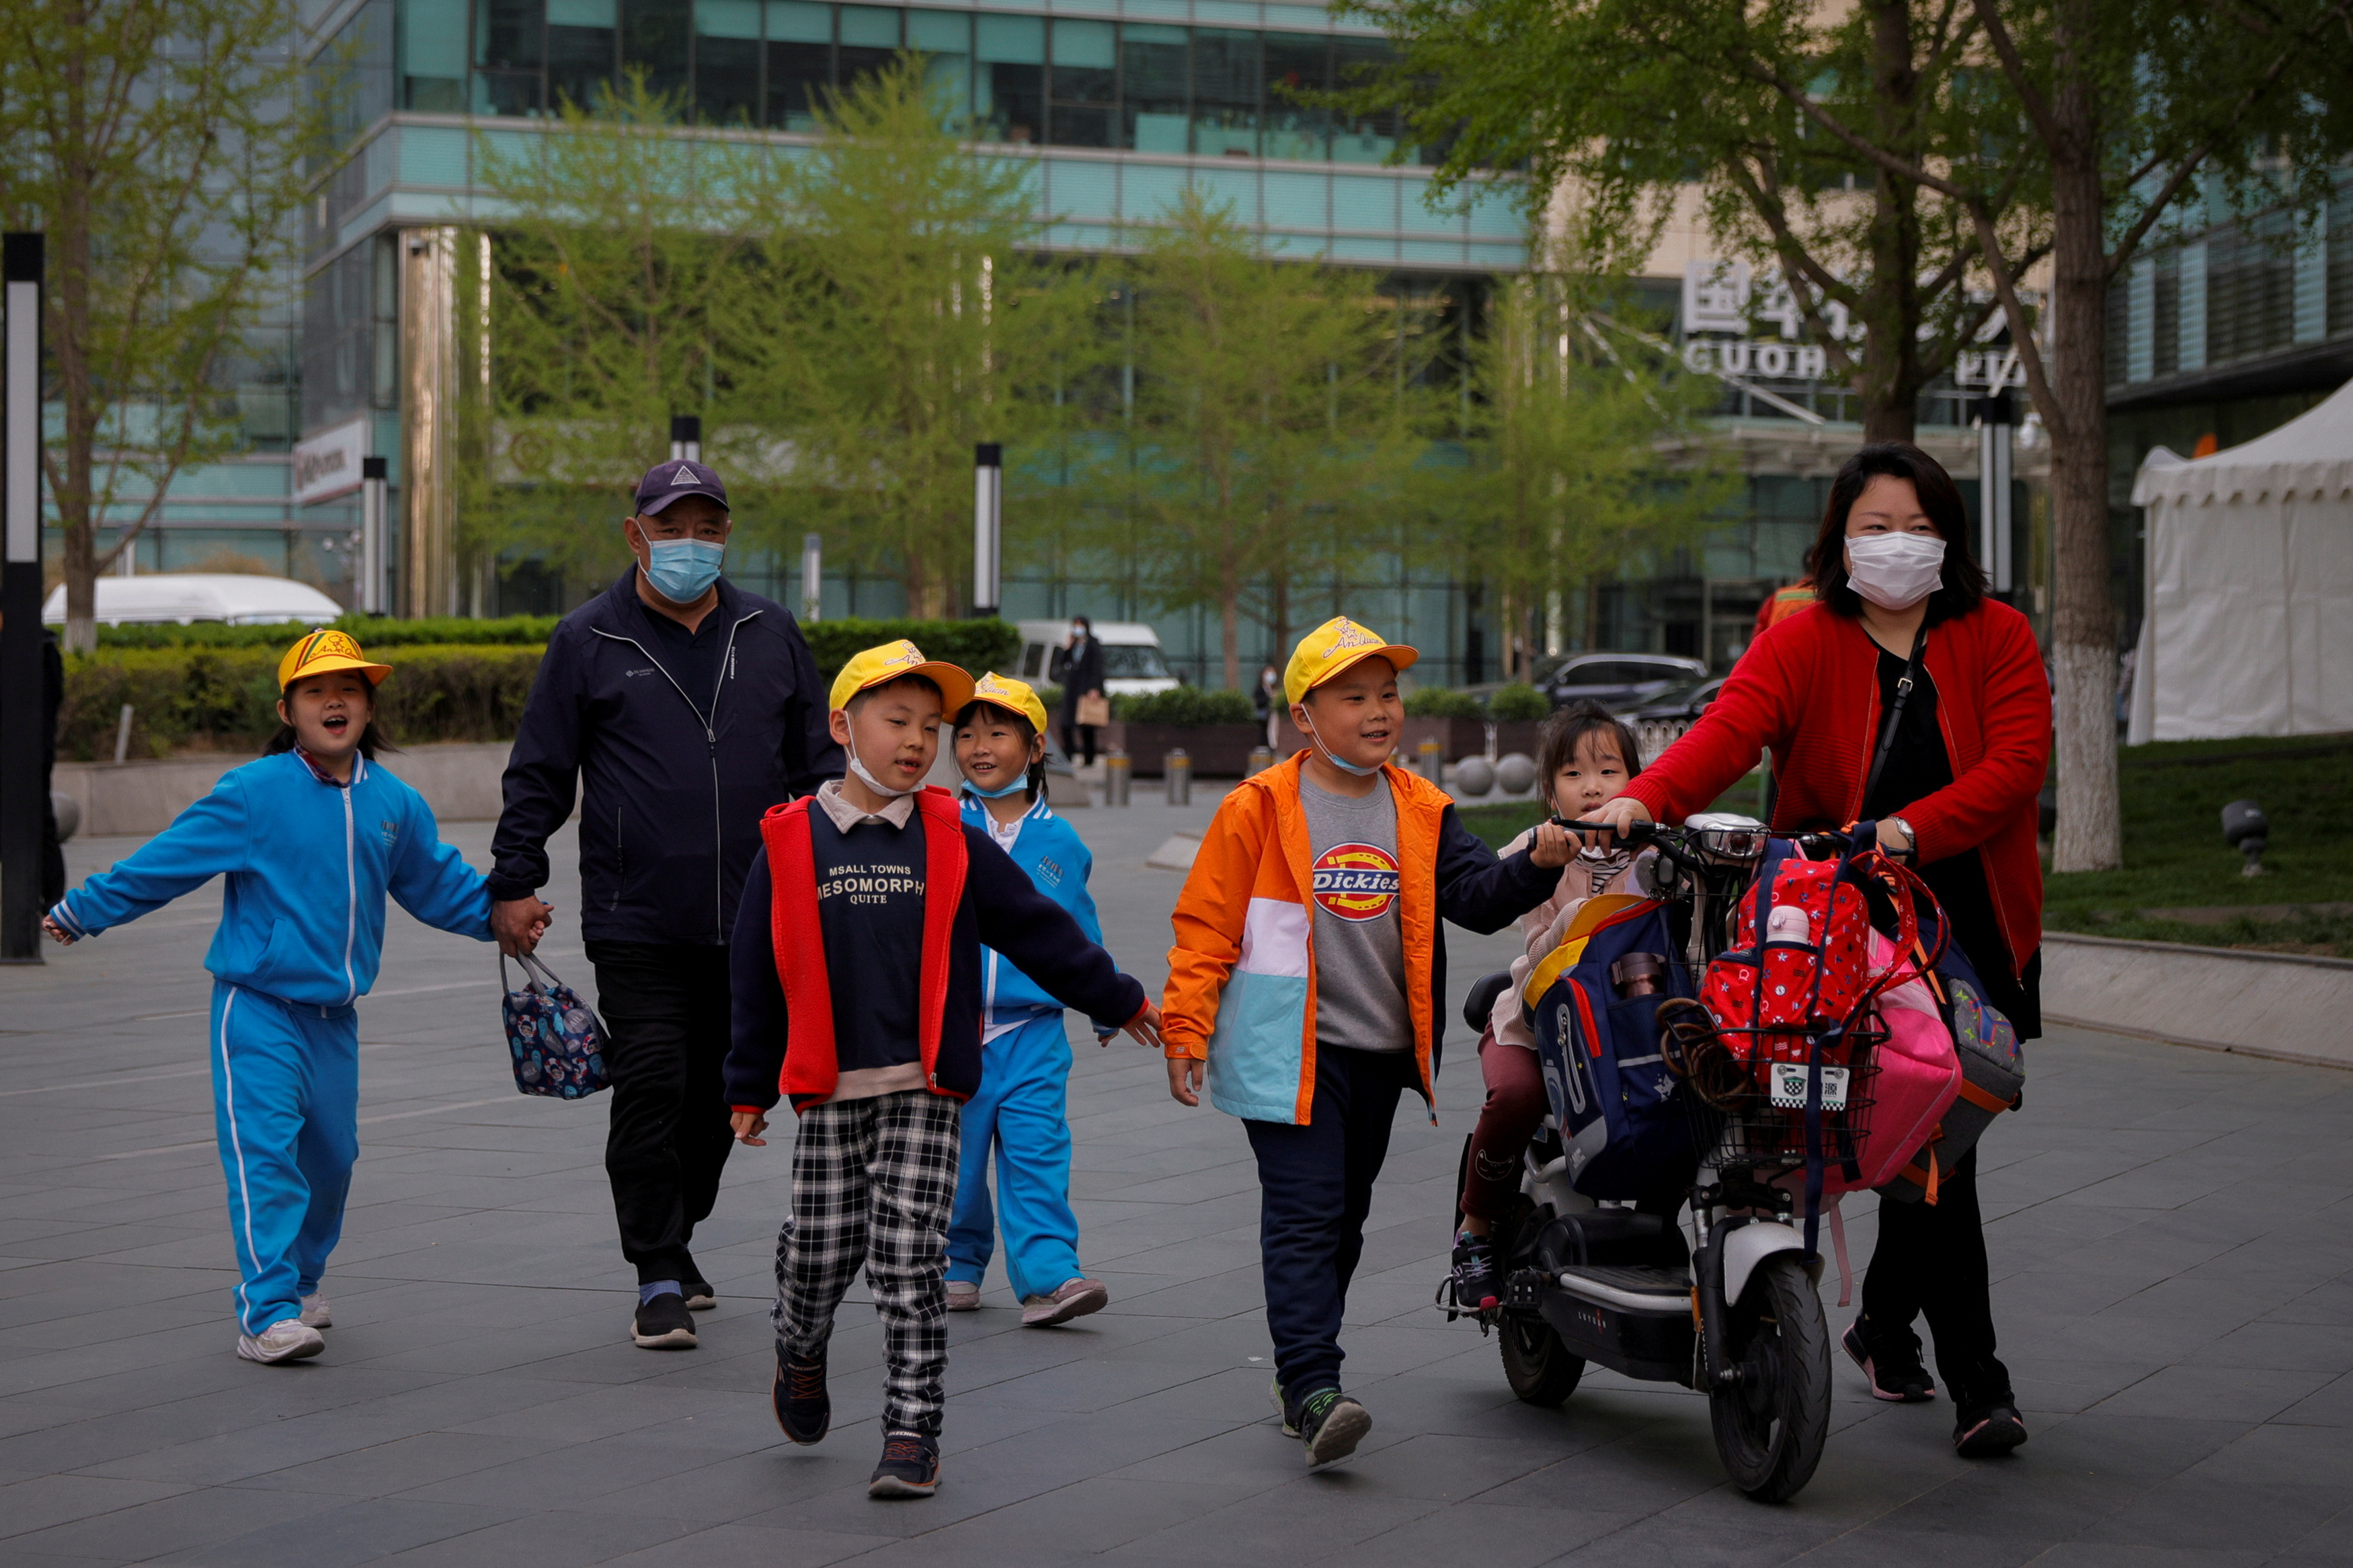 People pick up children from a school in Beijing, China, April 6, 2021. REUTERS/Thomas Peter